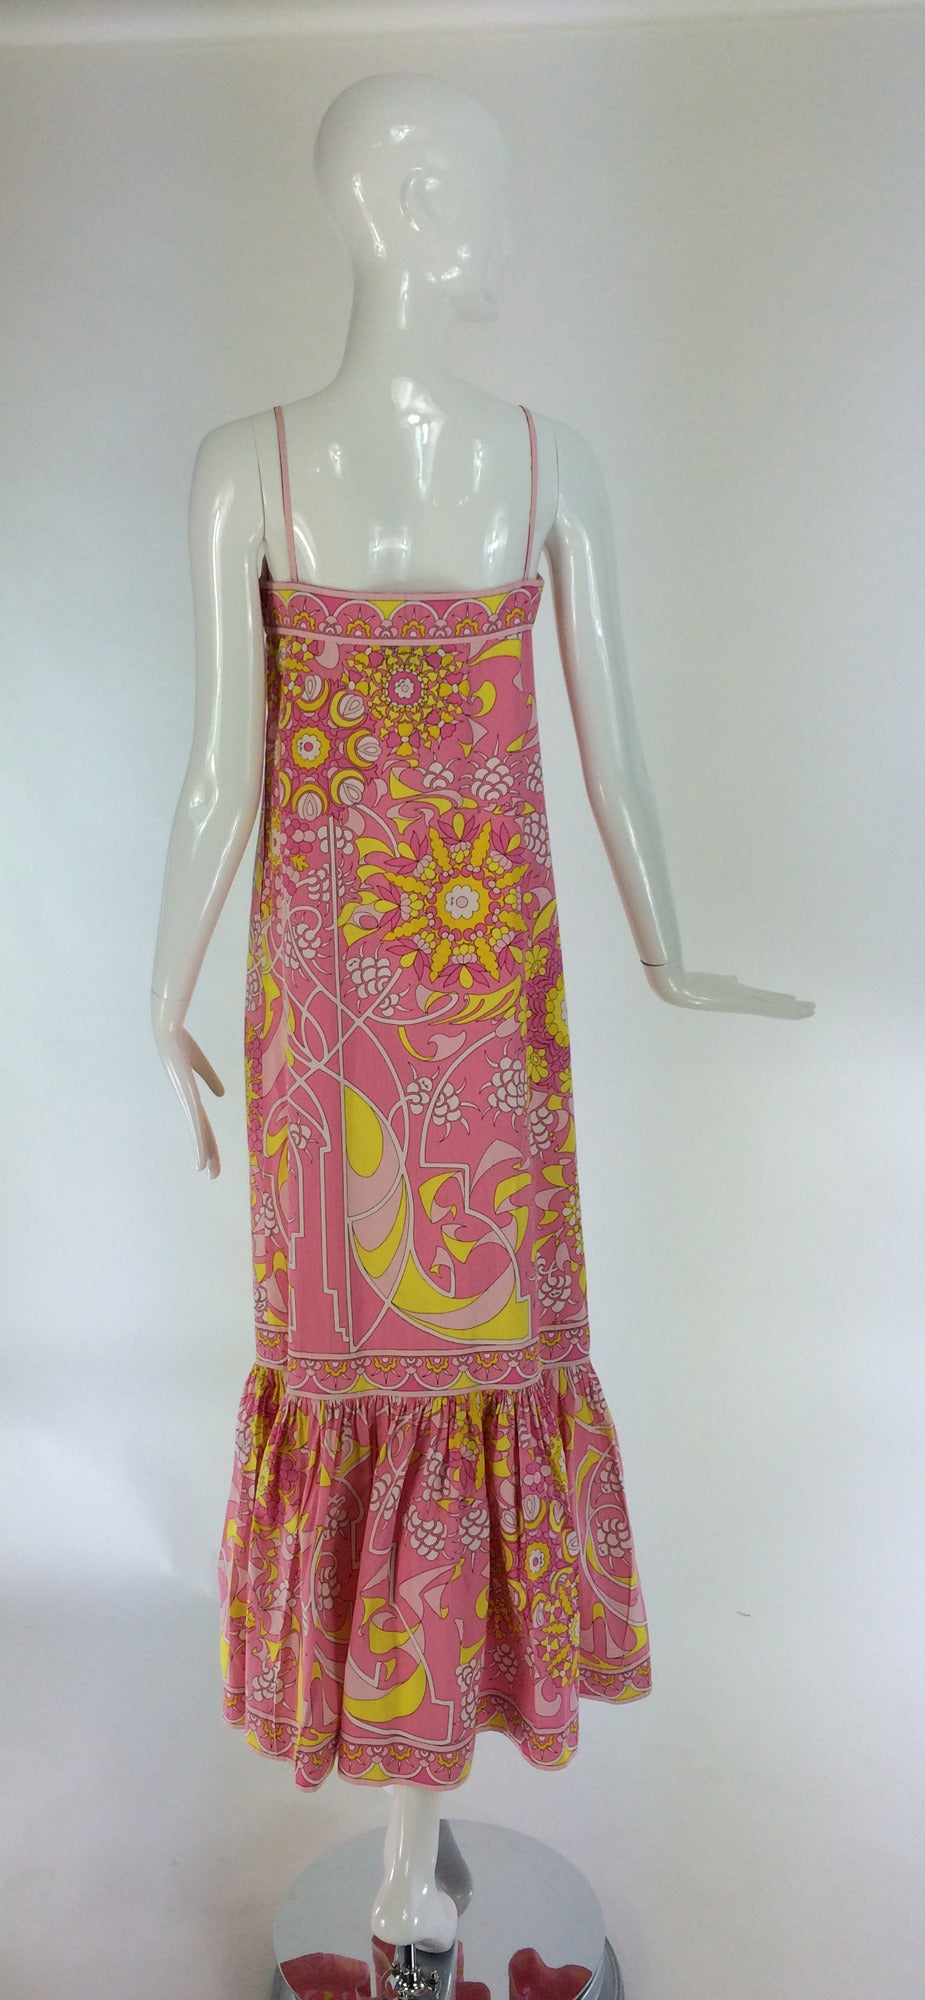 Emilio Pucci printed cotton maxi dress out of the ordinary design 1960s For Sale 2